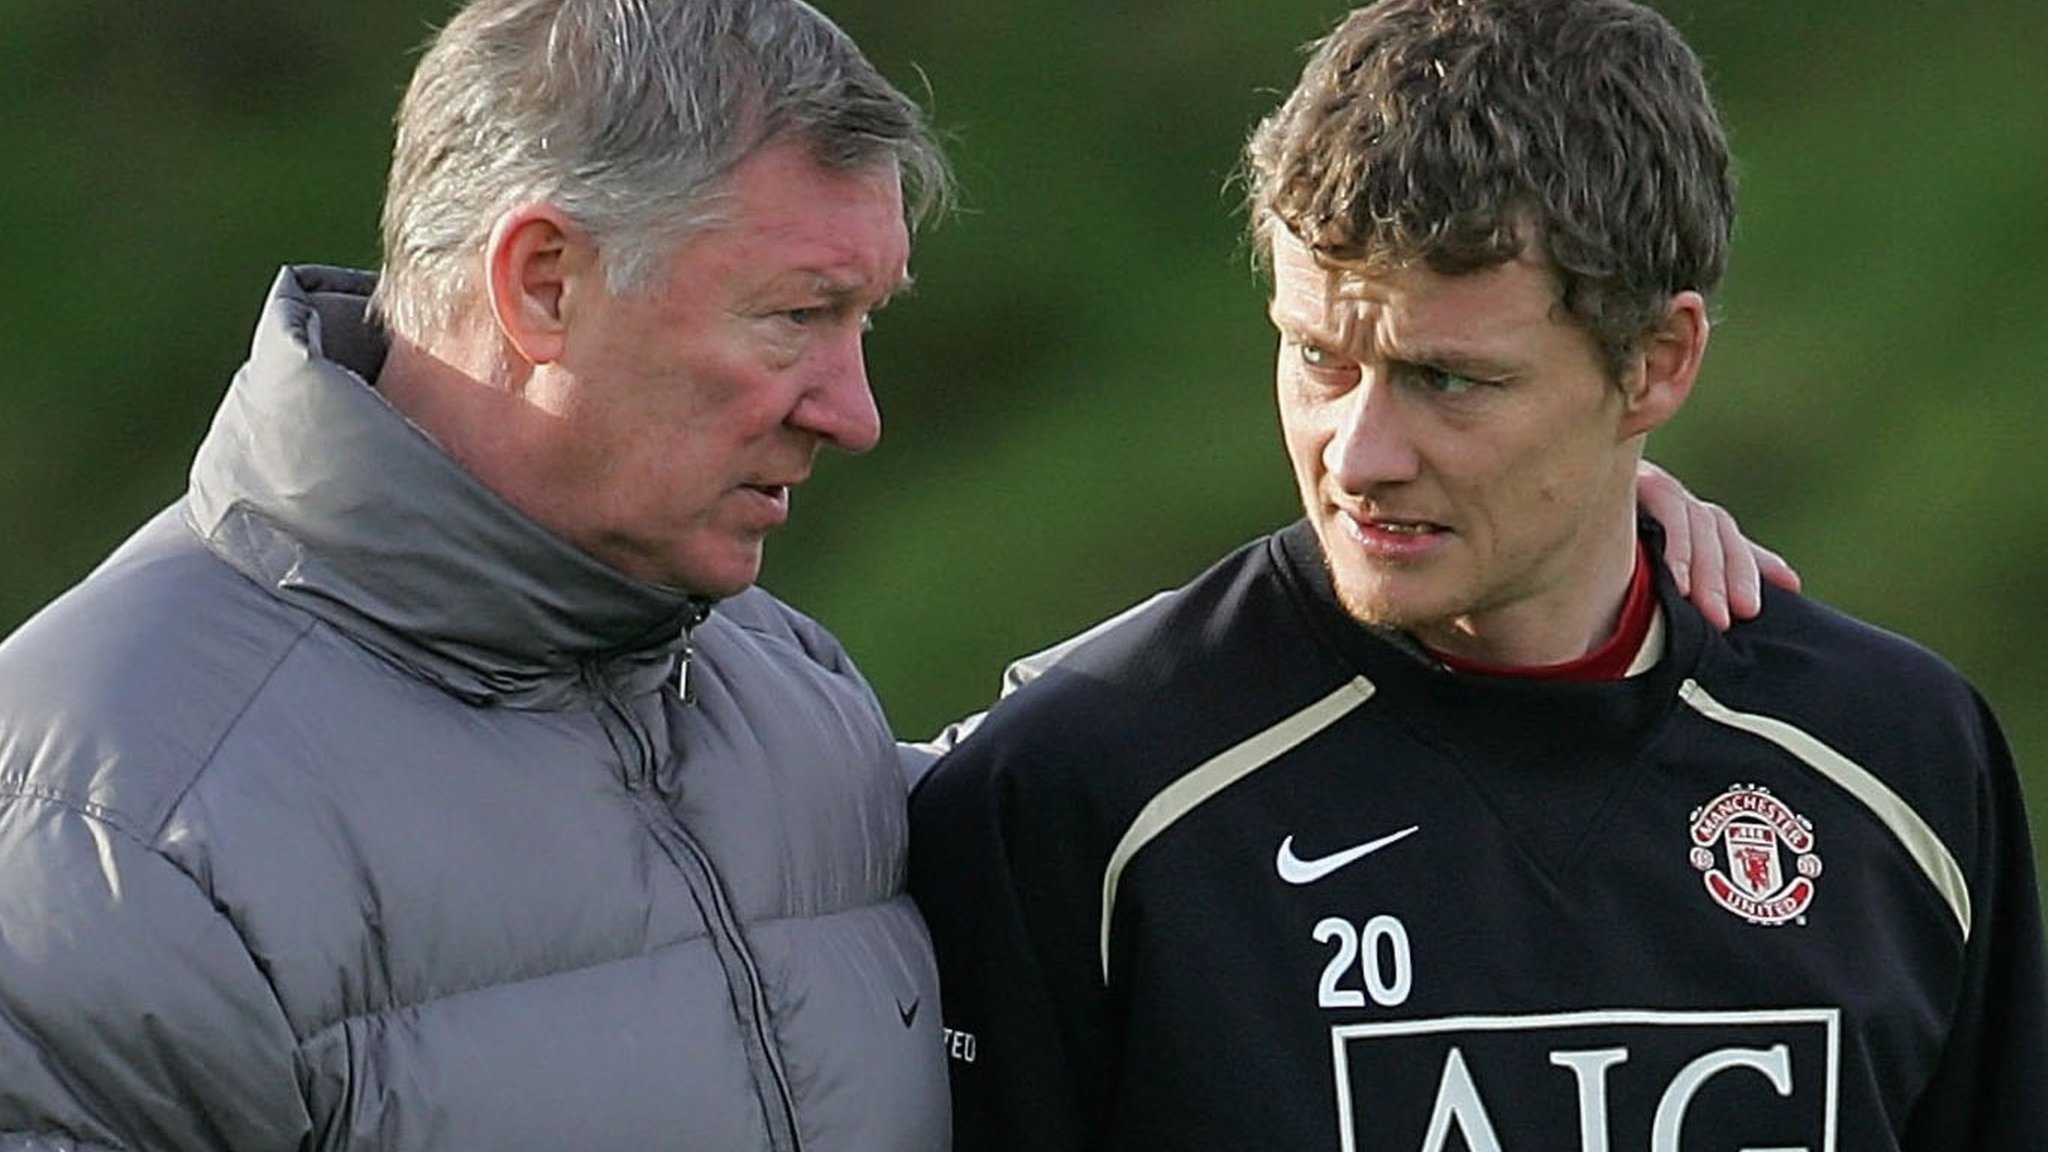 Sir Alex taught me everything - Man Utd legend Solskjaer